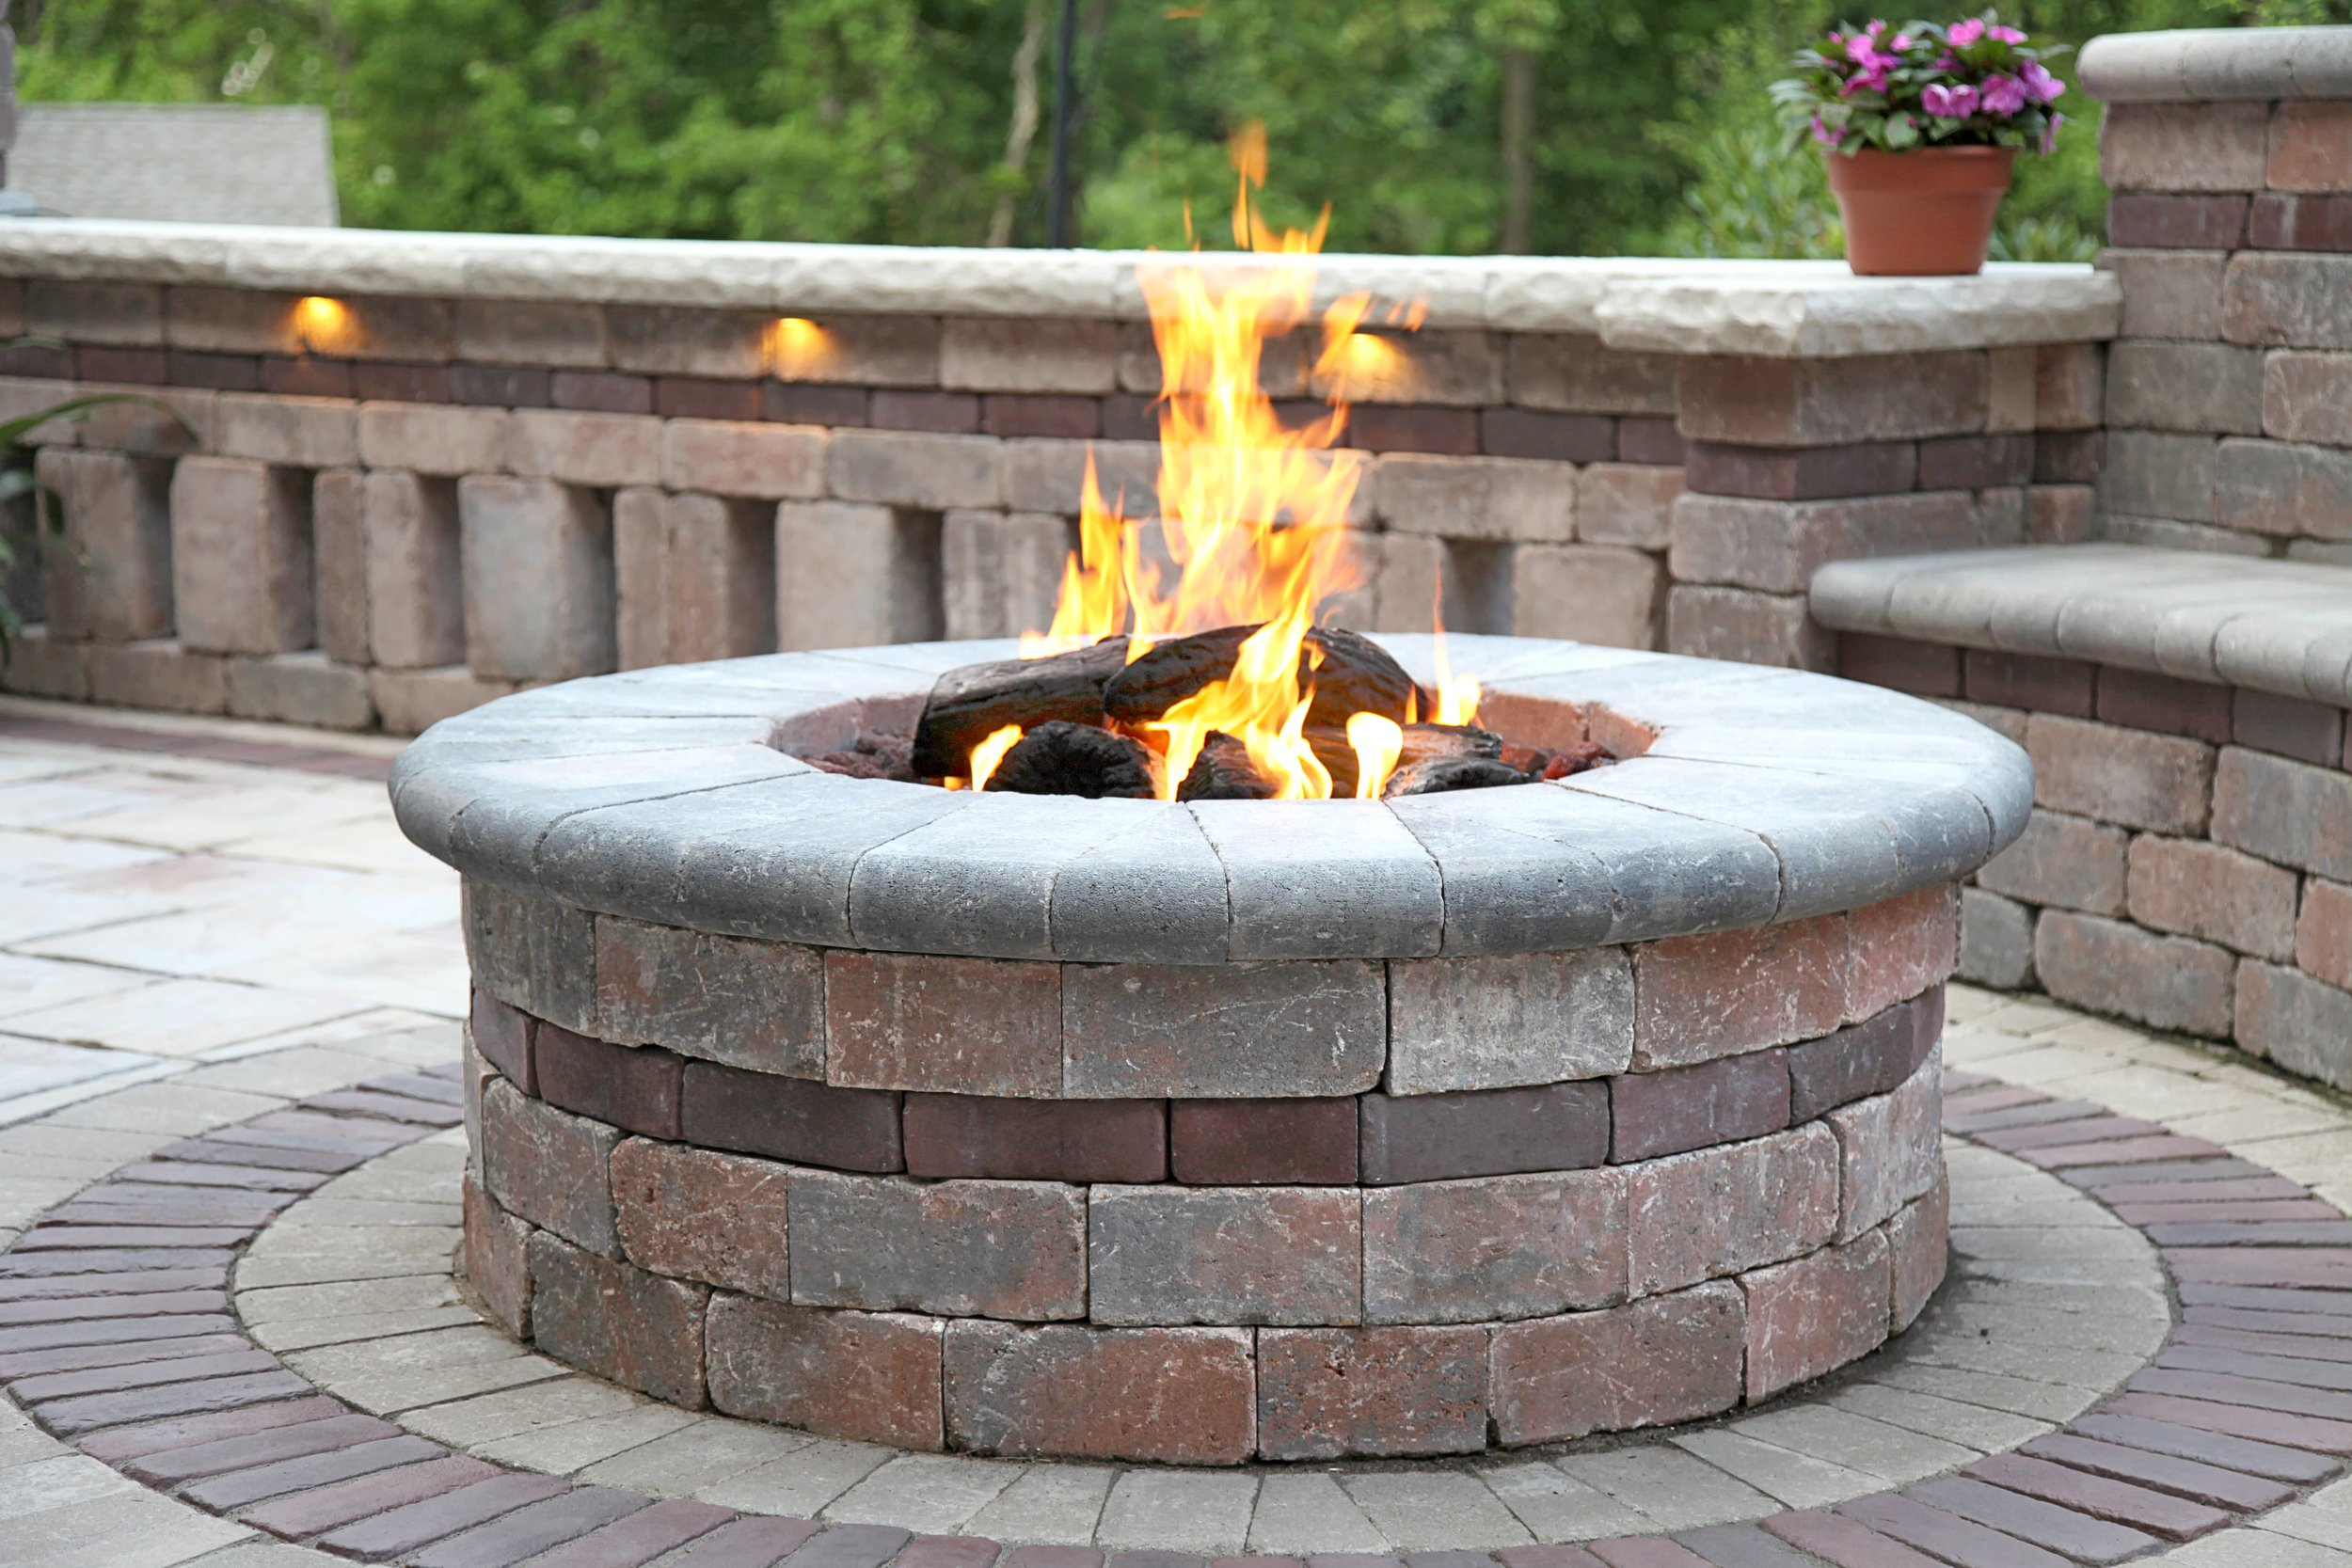 Visit Our Masonry Supply for Quality Fire Pit Materials in Sussex County, NJ